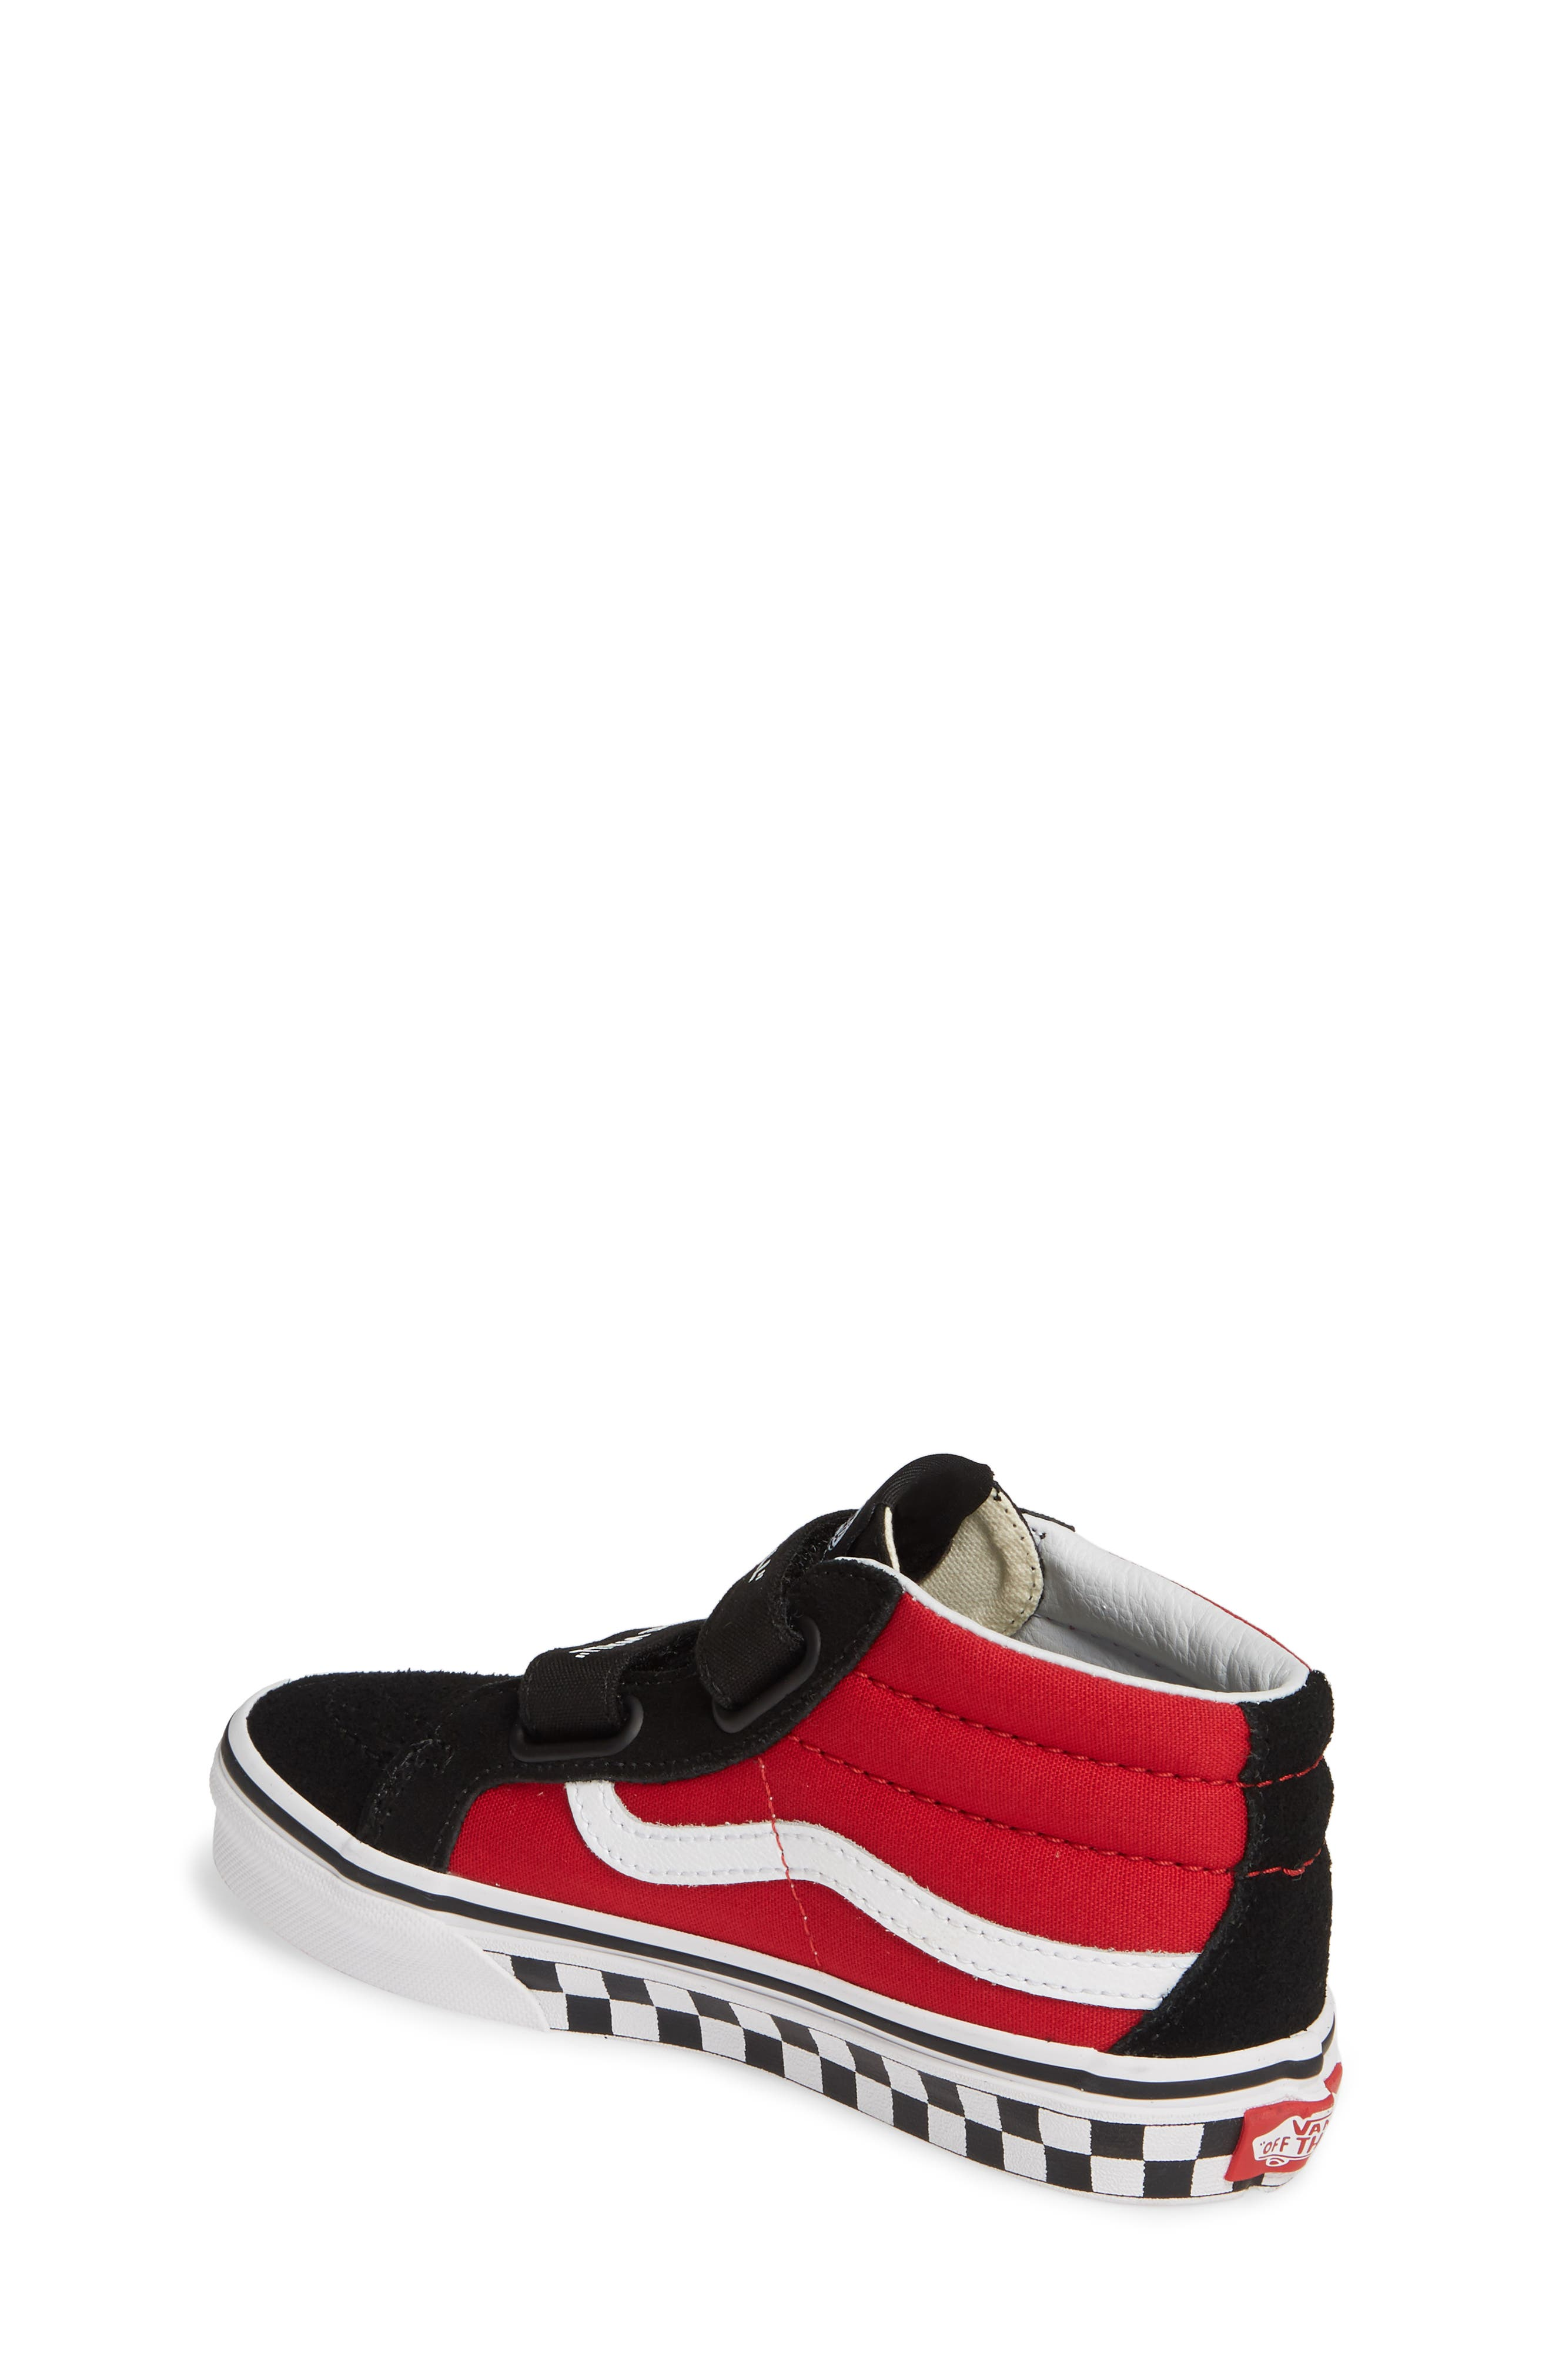 VANS, Sk8-Mid Reissue V Sneaker, Alternate thumbnail 2, color, LOGO POP BLACK/ TRUE WHITE